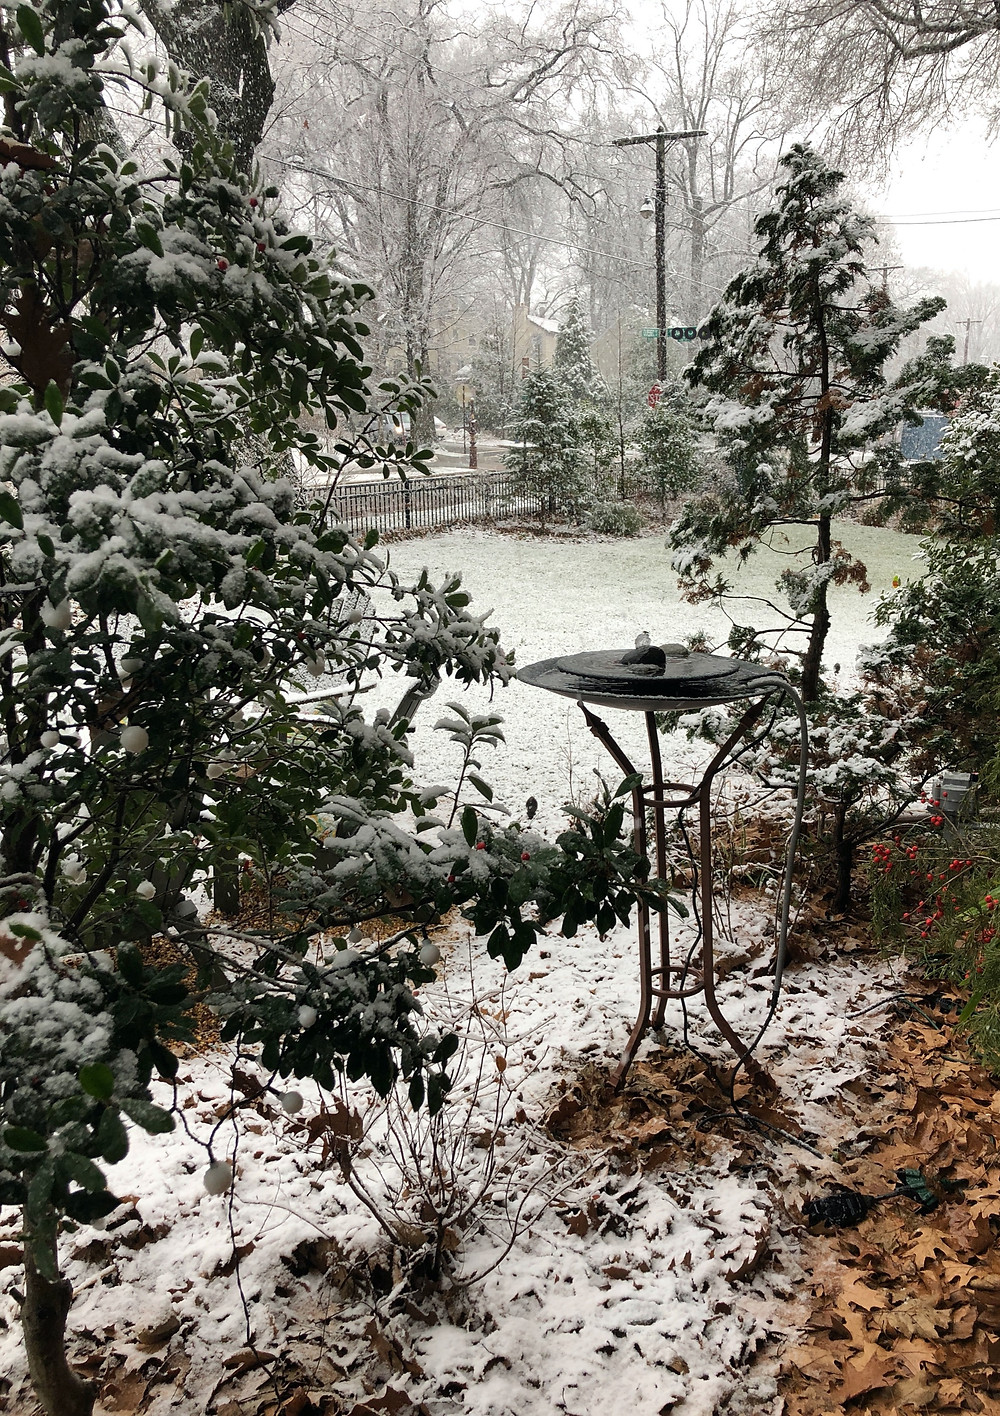 winter scene with native plants